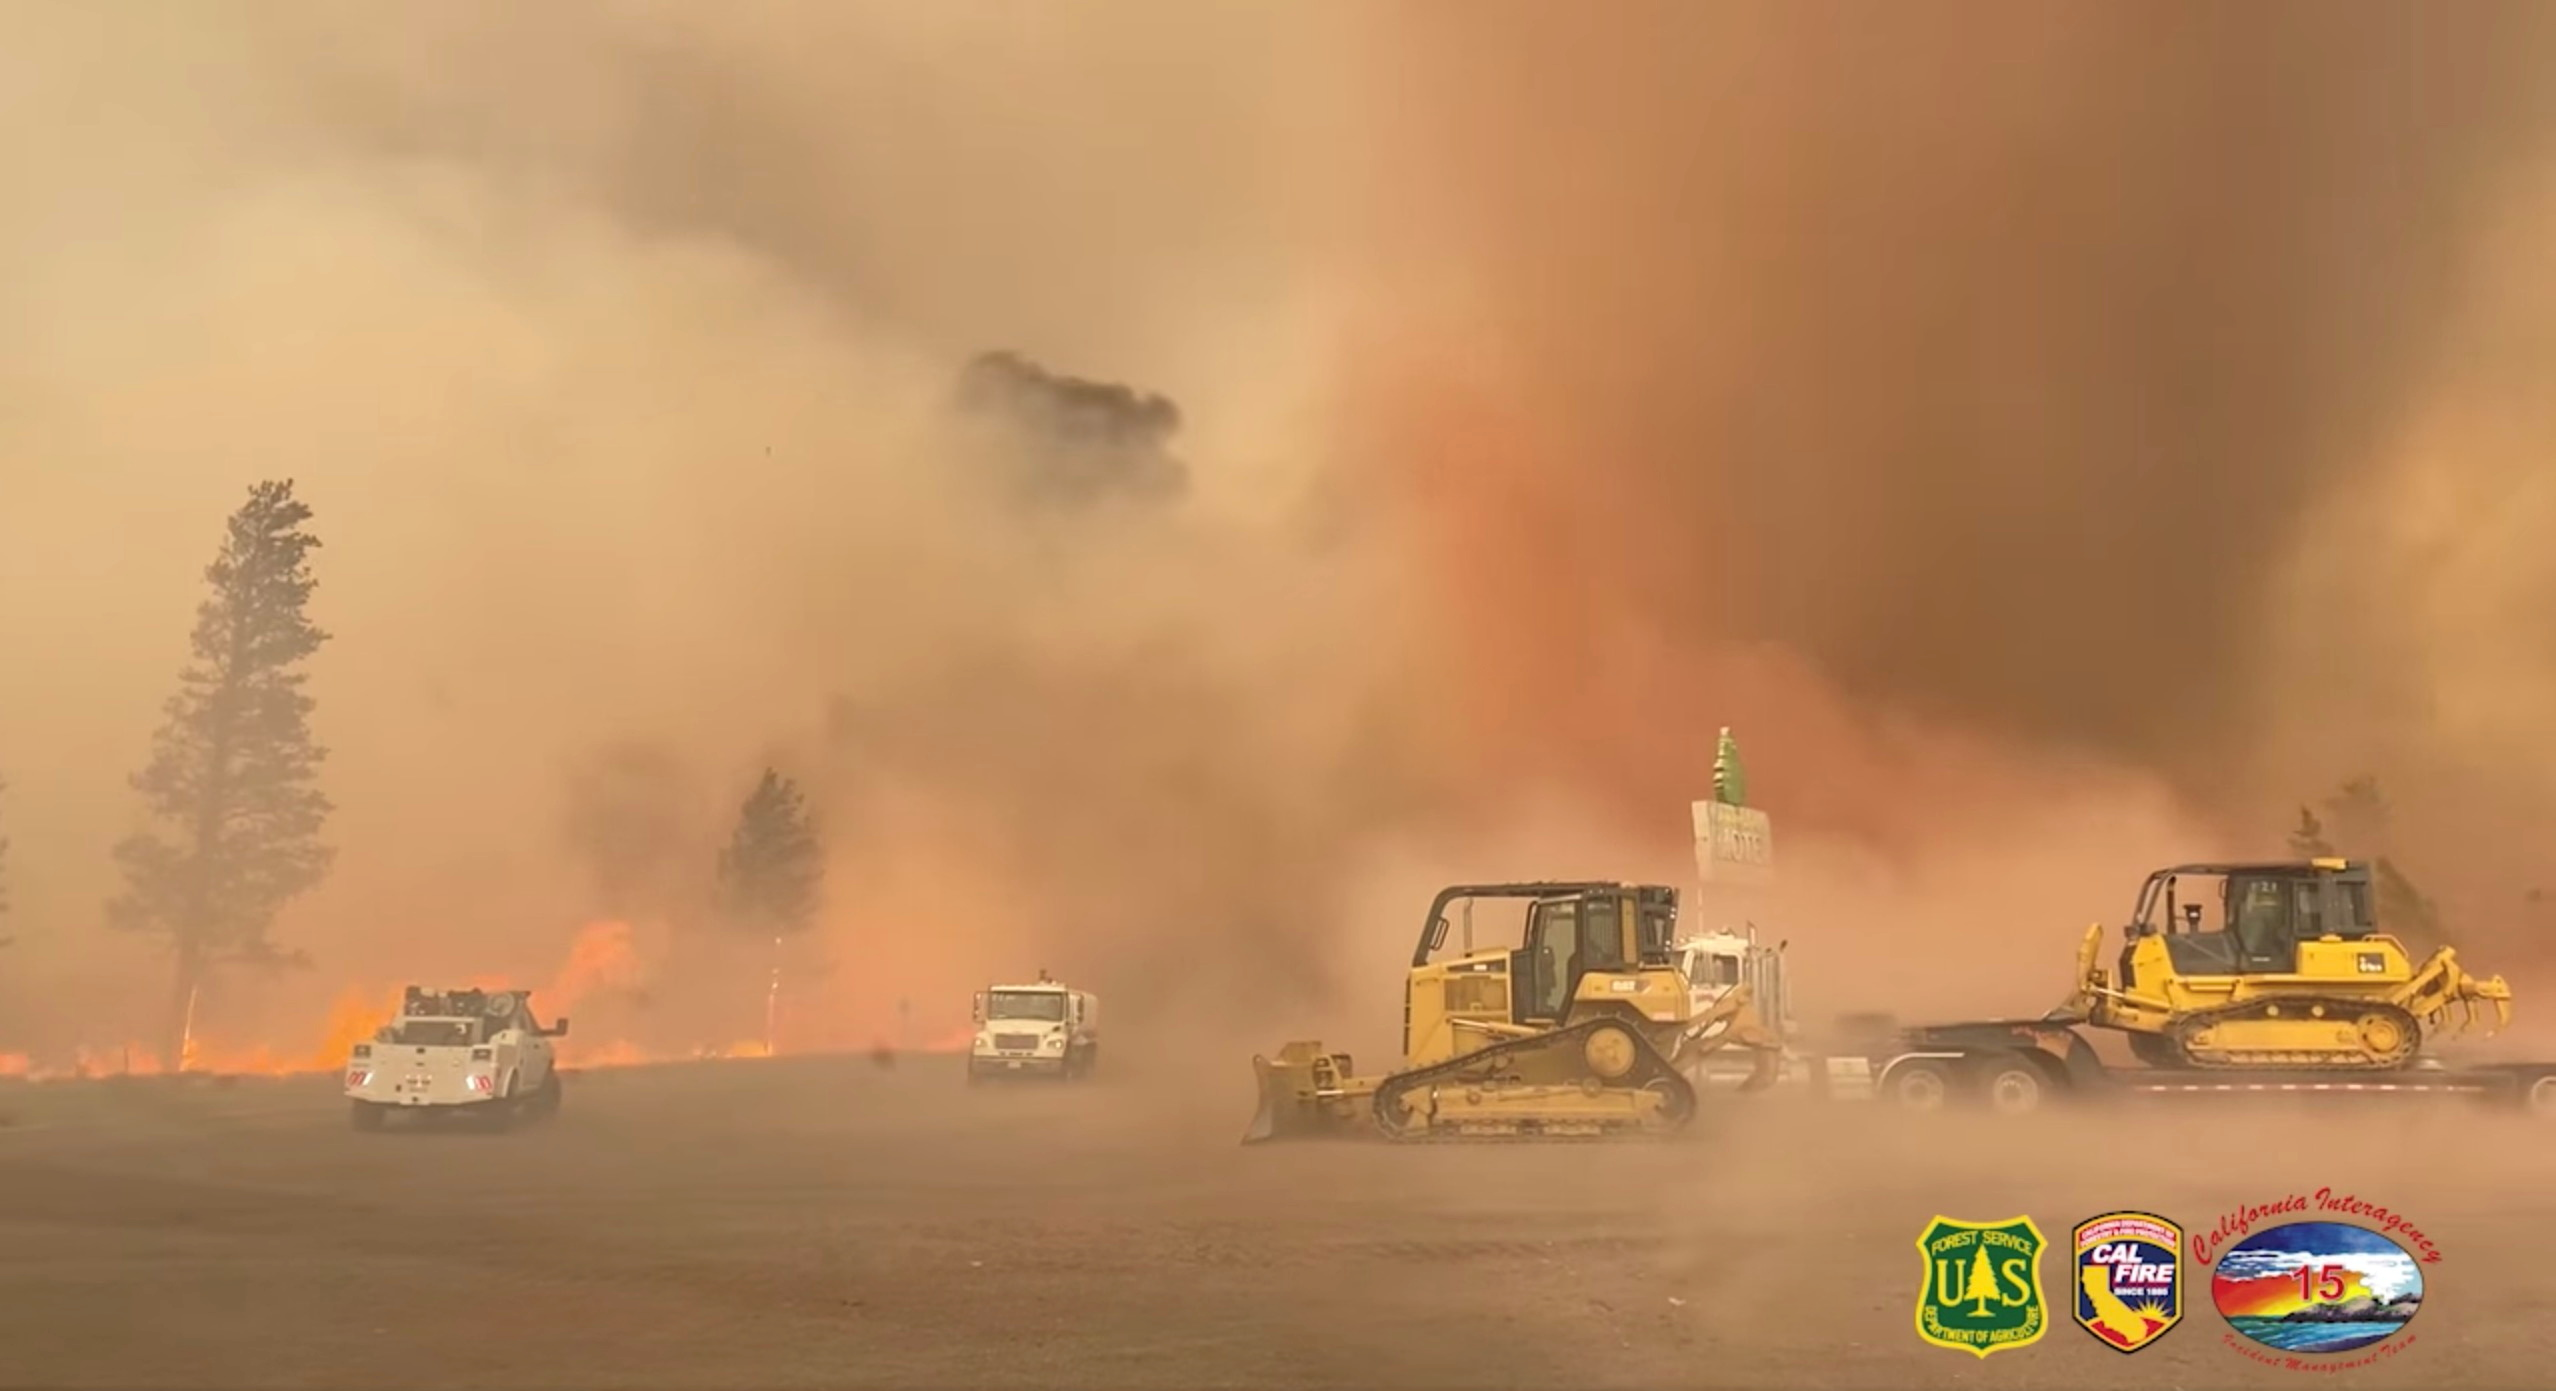 A view of a fire whirl at the Tennant wildfire in the Klamath National Forest, in Macdoel, California, U.S., June 29, 2021, in this screengrab obtained on July 10, 2021.  U.S. Forest Service/Rachel Smith/Handout via REUTERS